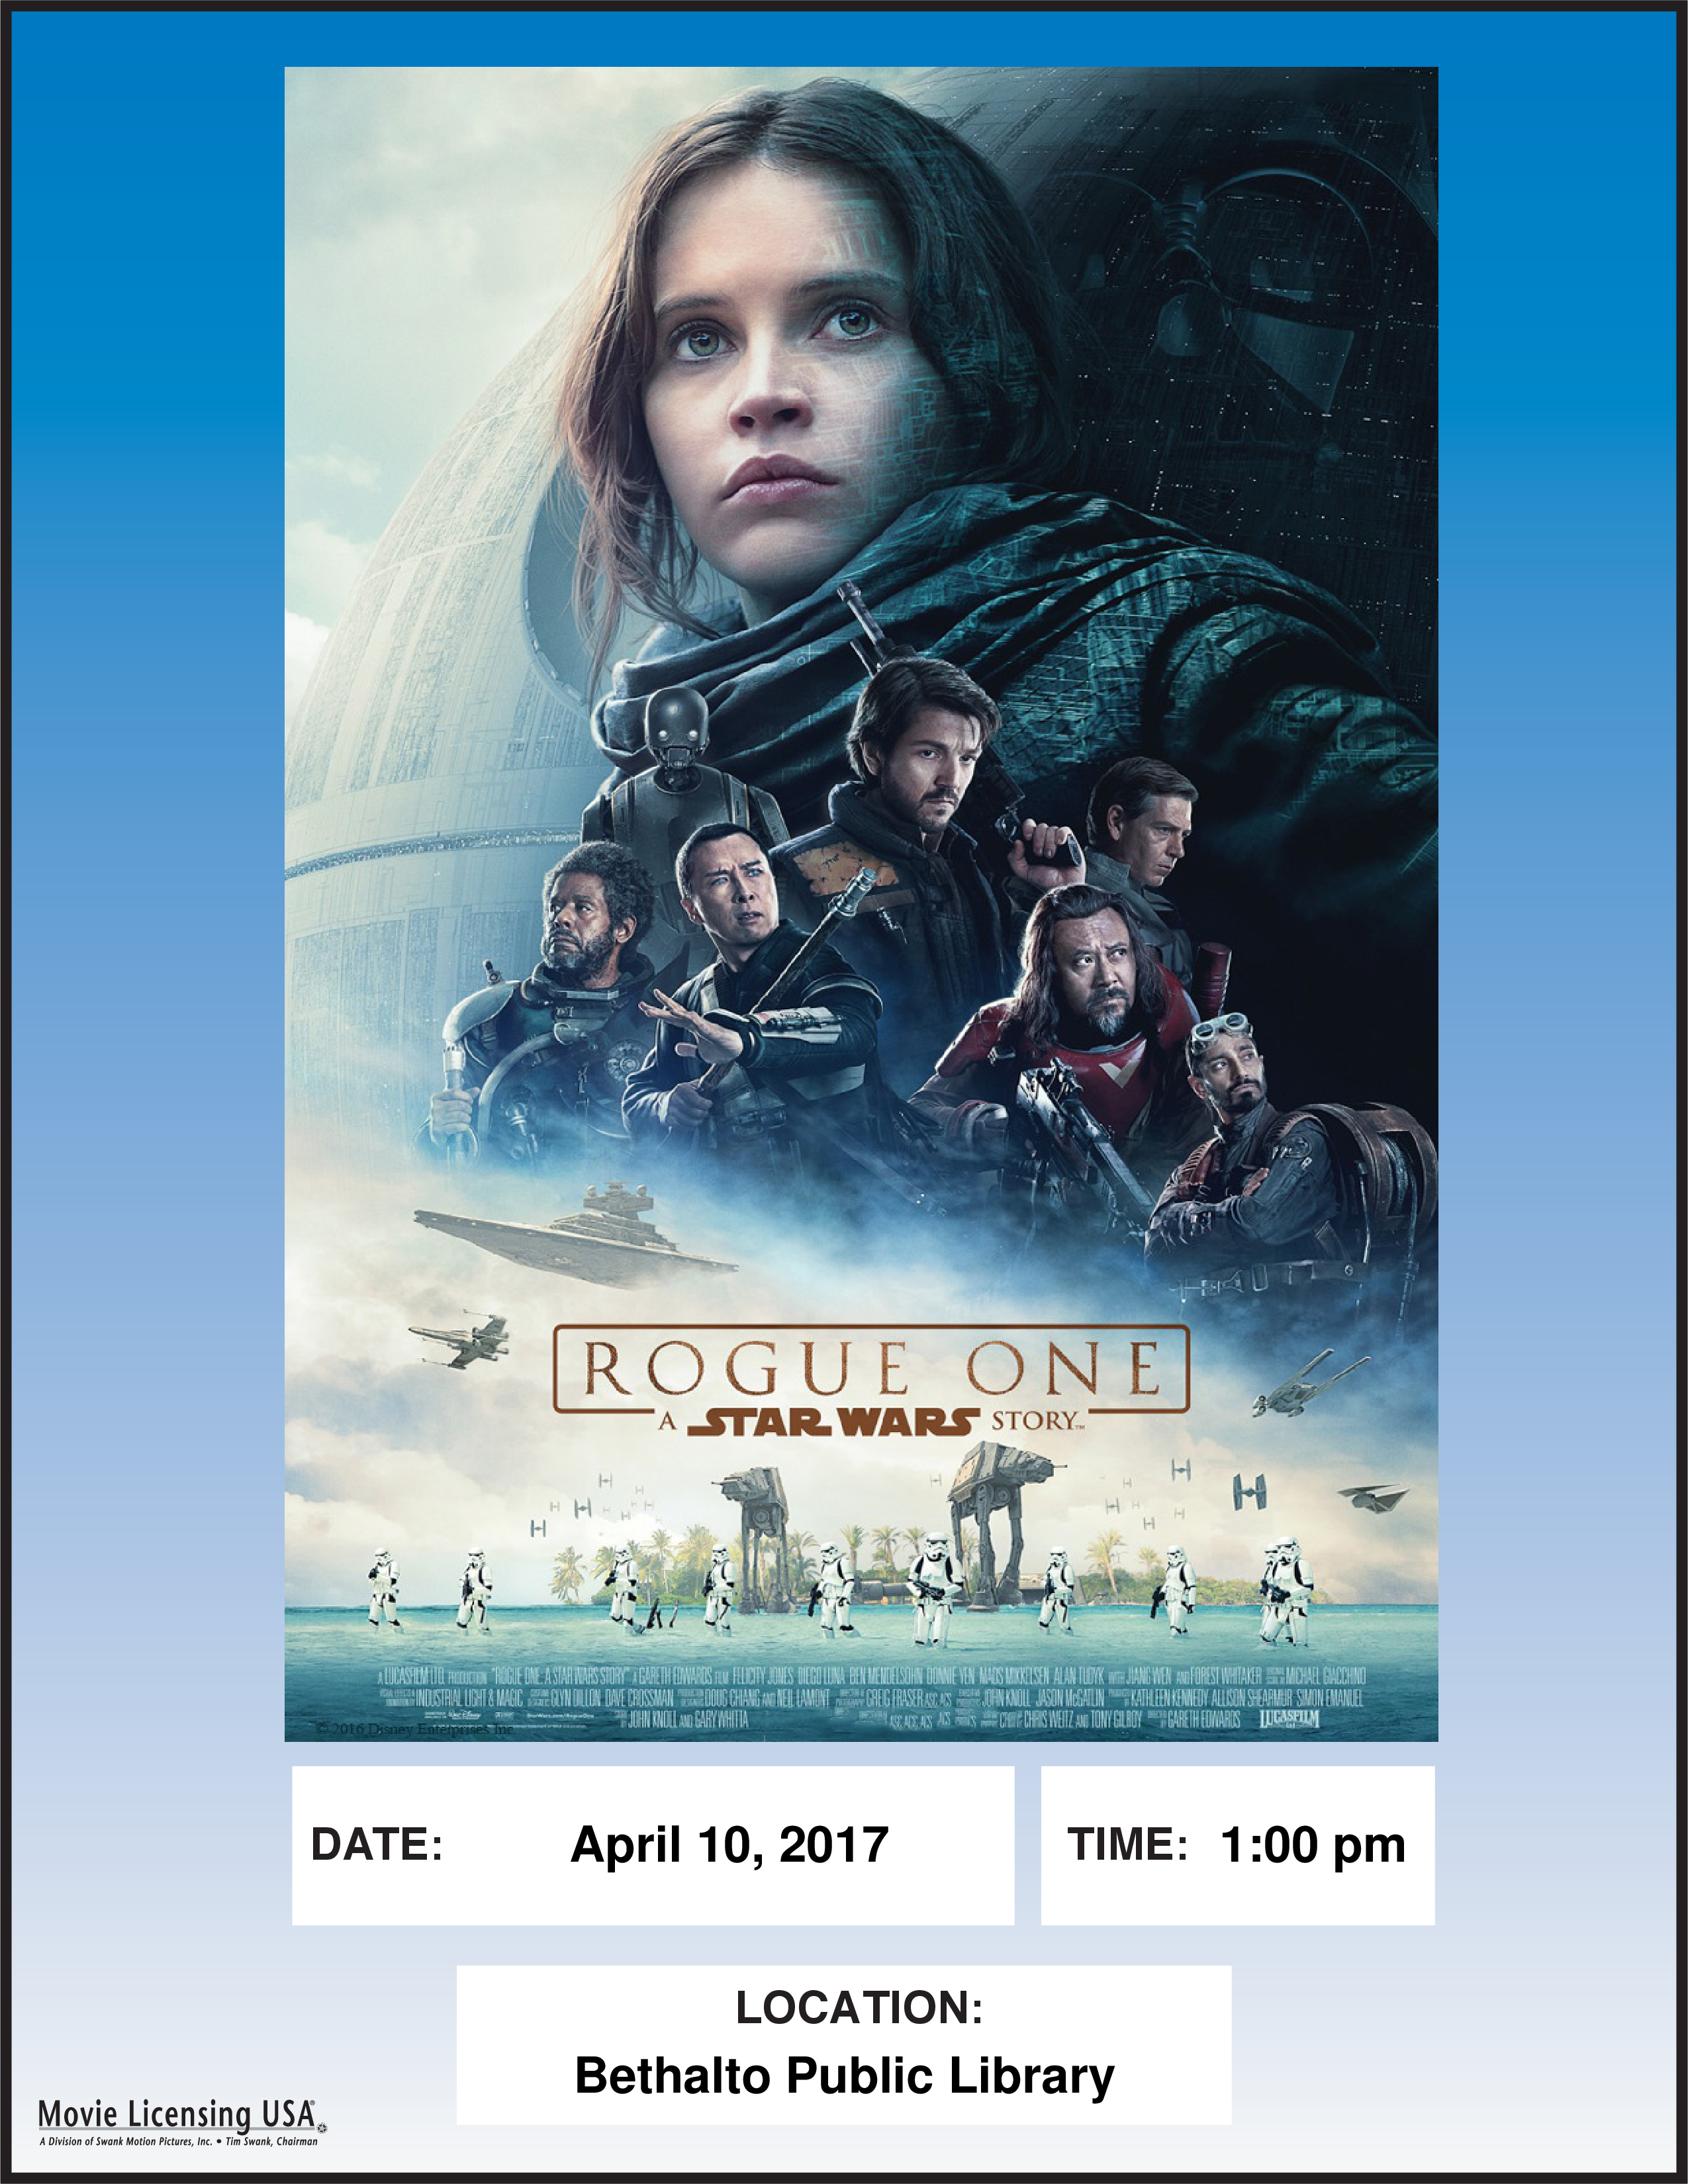 ROGUE_ONE_A_STAR_WARS_STORY_poster.png